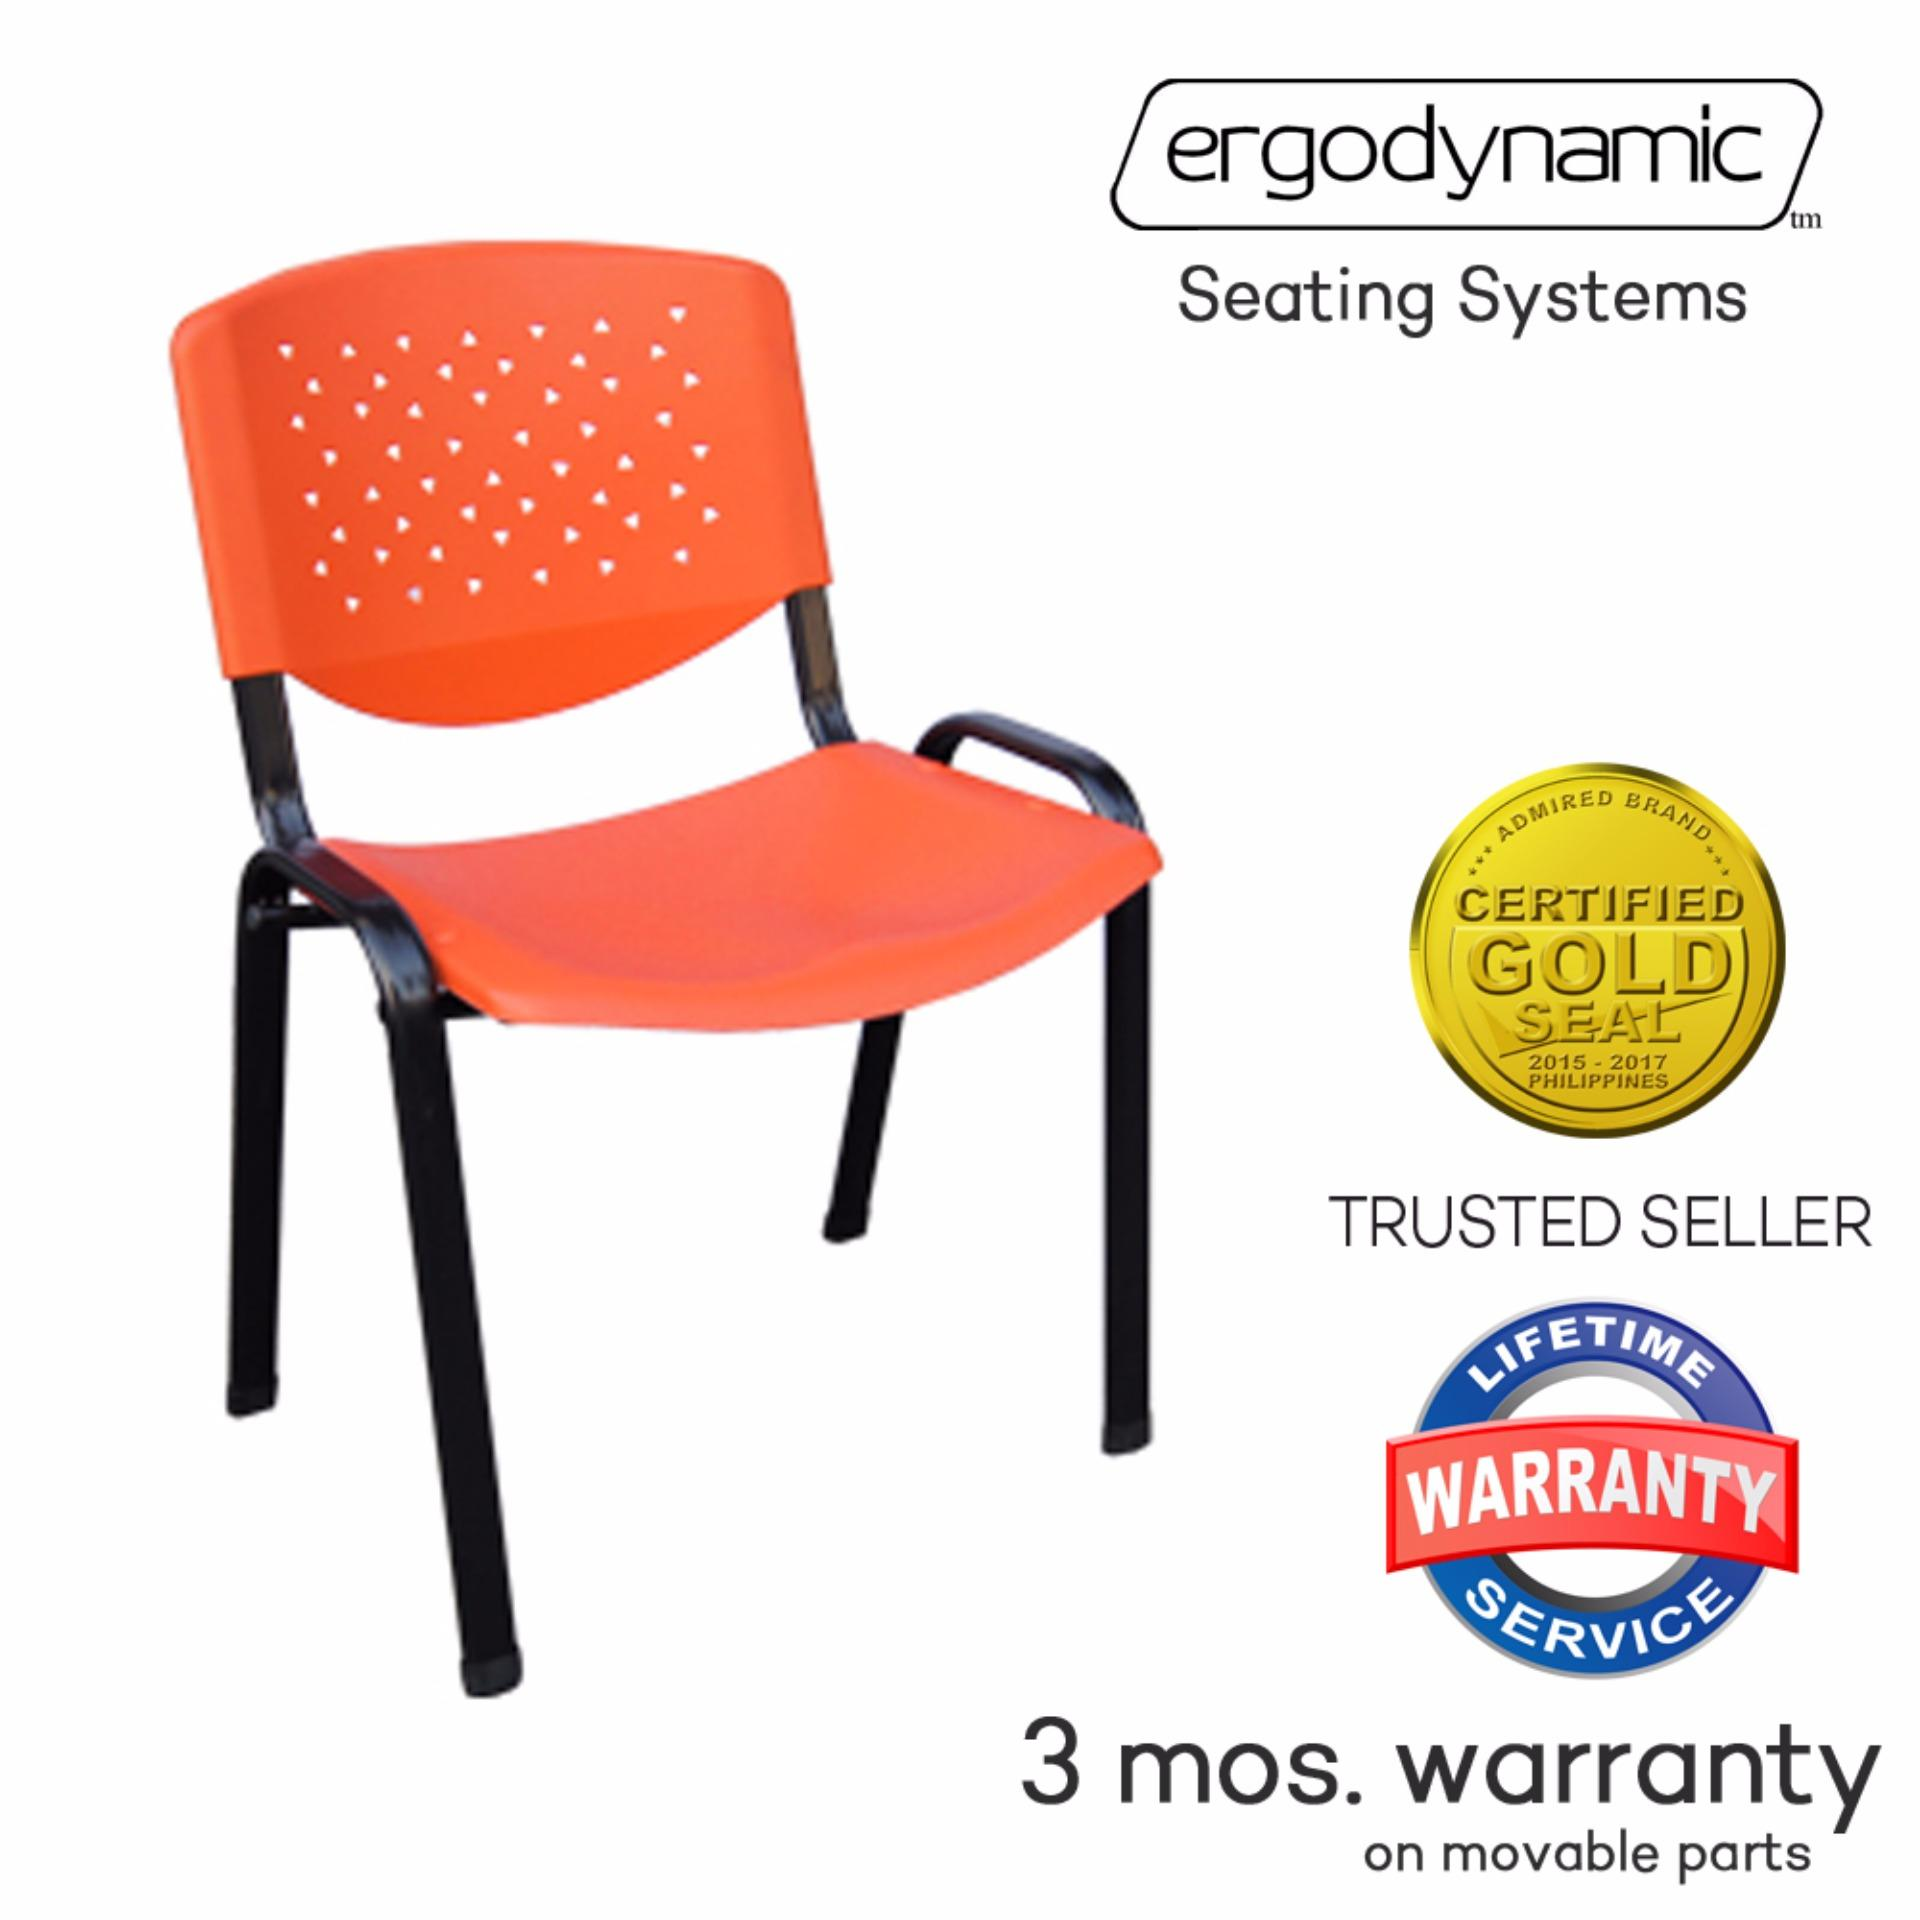 Ergodynamic VCP 205ORG Stackable Plastic Meeting Chairs (Orange)